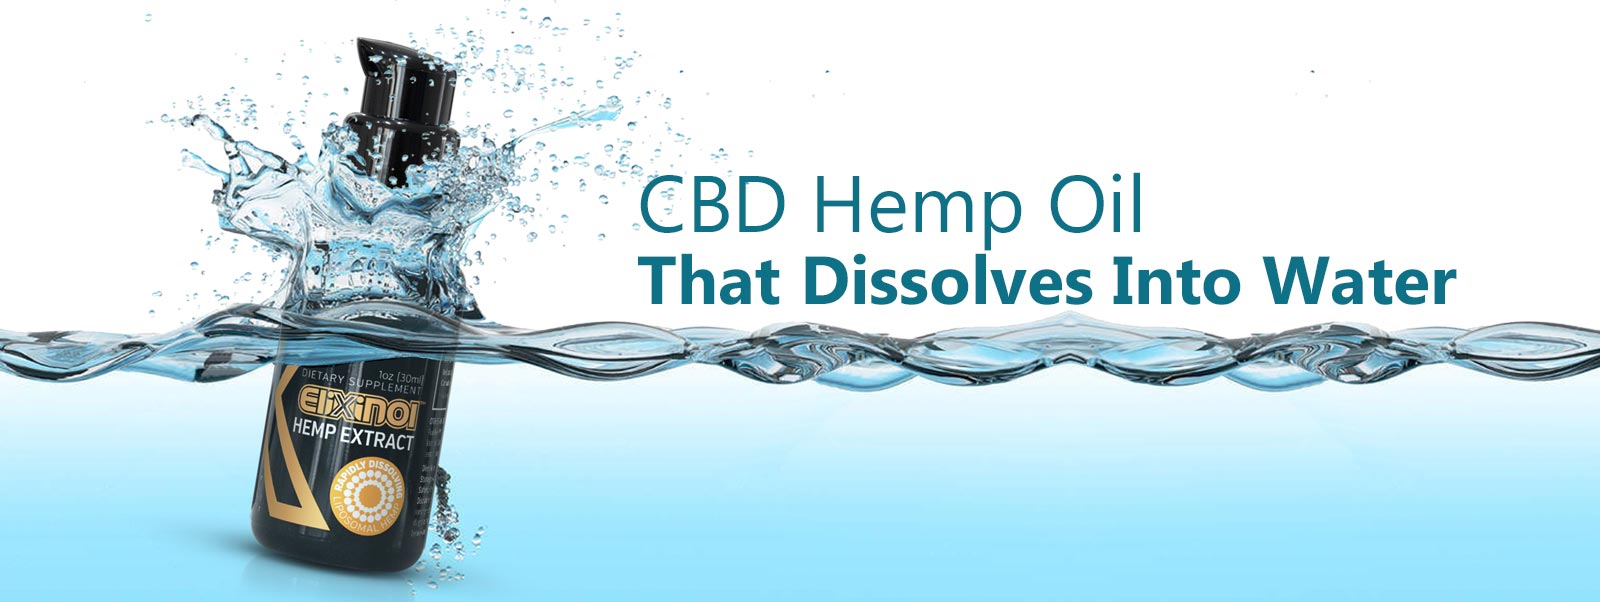 What is a Liposome and How Could it Improve CBD Absorption?